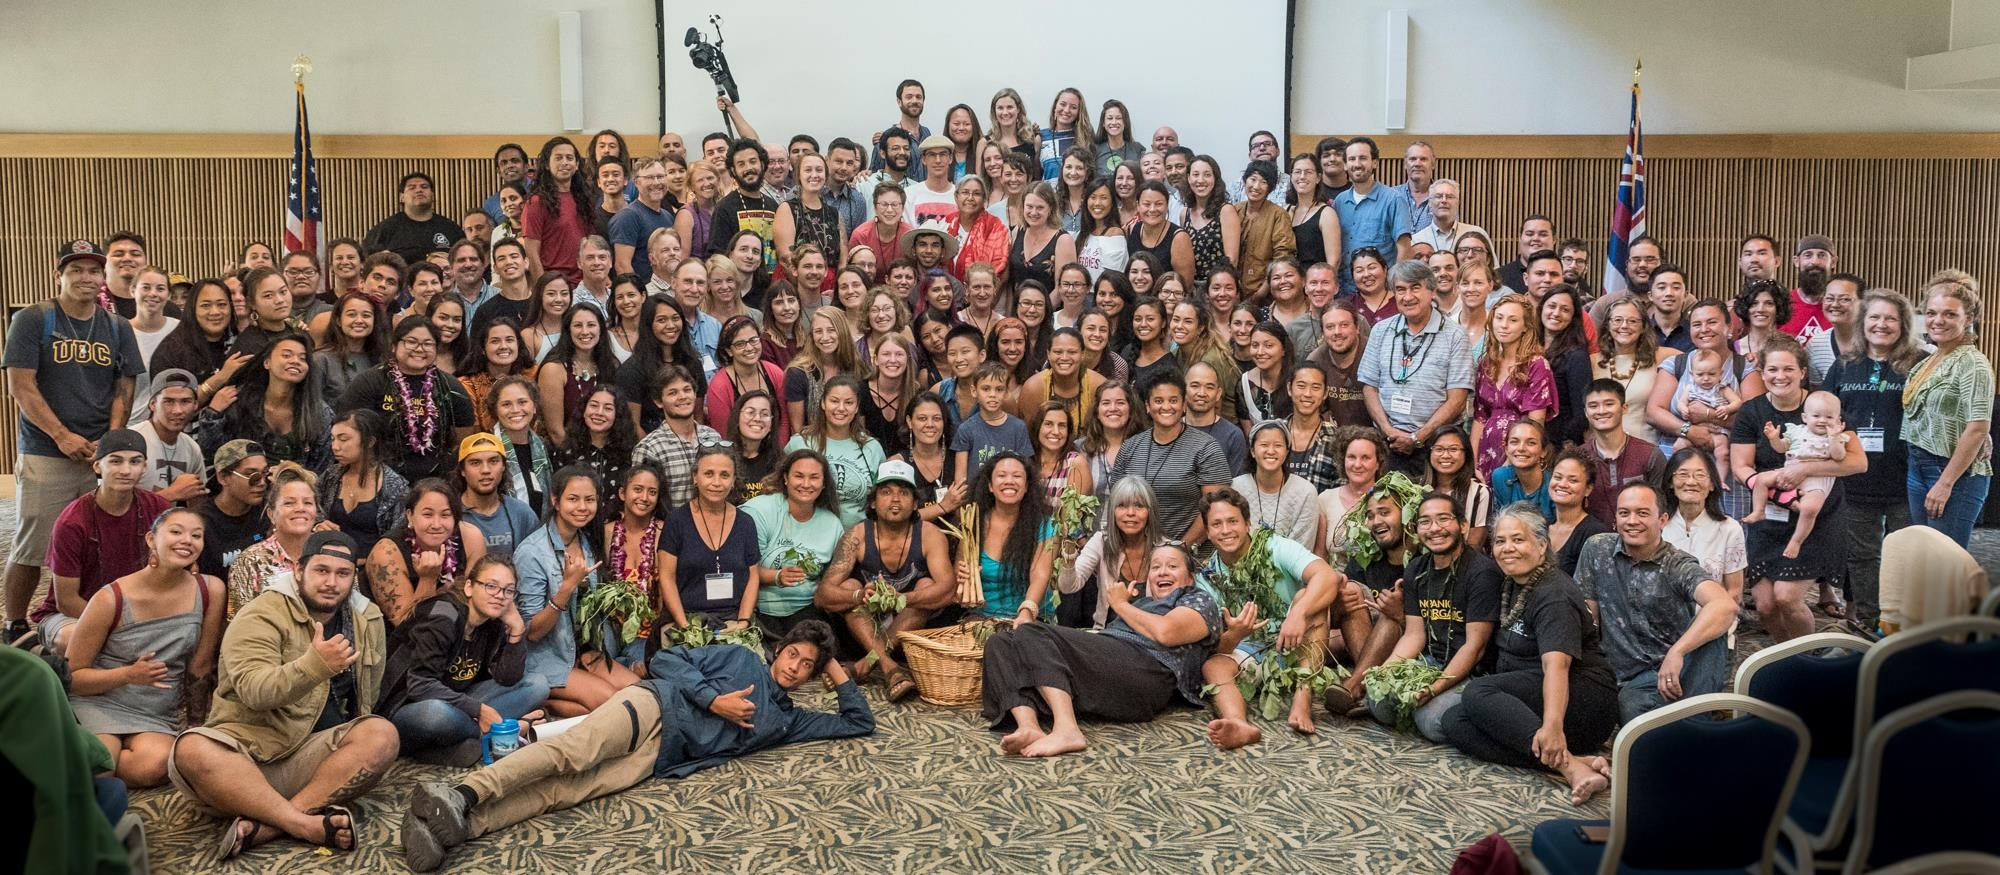 2018 (SAEA) Conference +Hoʻōla ʻĀina O Māʻilikūkahi Youth Food Sovereignty Congress A global community of change makers in solidarity at the 2018 Sustainable Agriculture Education Association (SAEA) Conference + Hoʻōla ʻĀina O Māʻilikūkahi Youth Food Sovereignty Congress held at University of Hawai'i West Oahu. Community-oriented, intergenerational and cultural approaches to building a sustainable food system are honored, cultivated and launched. Themed around indigenous knowledge, decolonization and socio-ecological resiliency in agroecology and sustainable food systems education. - FOOD SOVEReignty